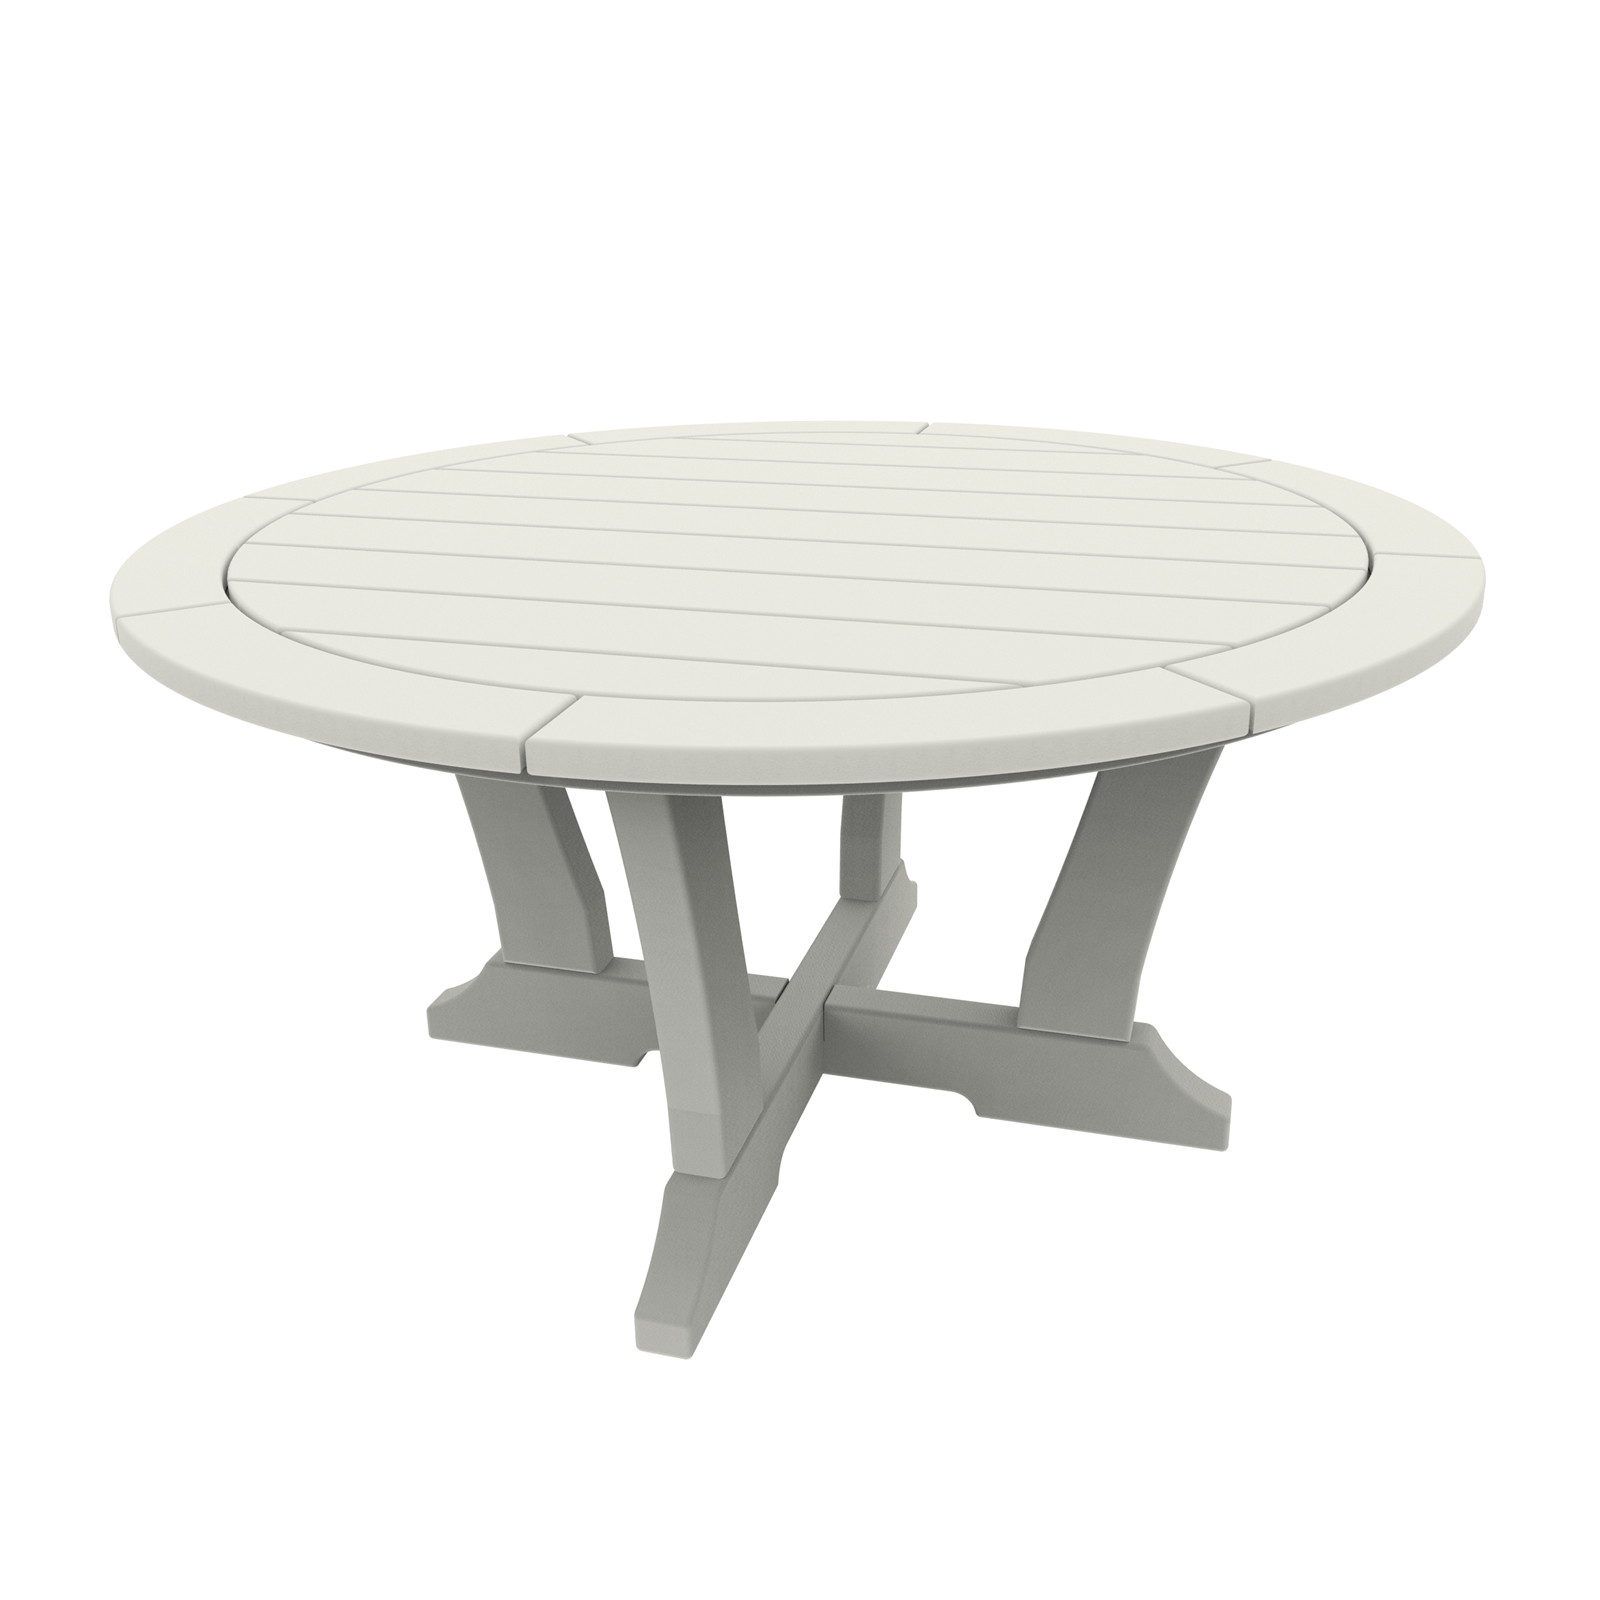 Malibu Outdoor Laguna In Conversation Table Malibu Outdoor - Malibu outdoor furniture